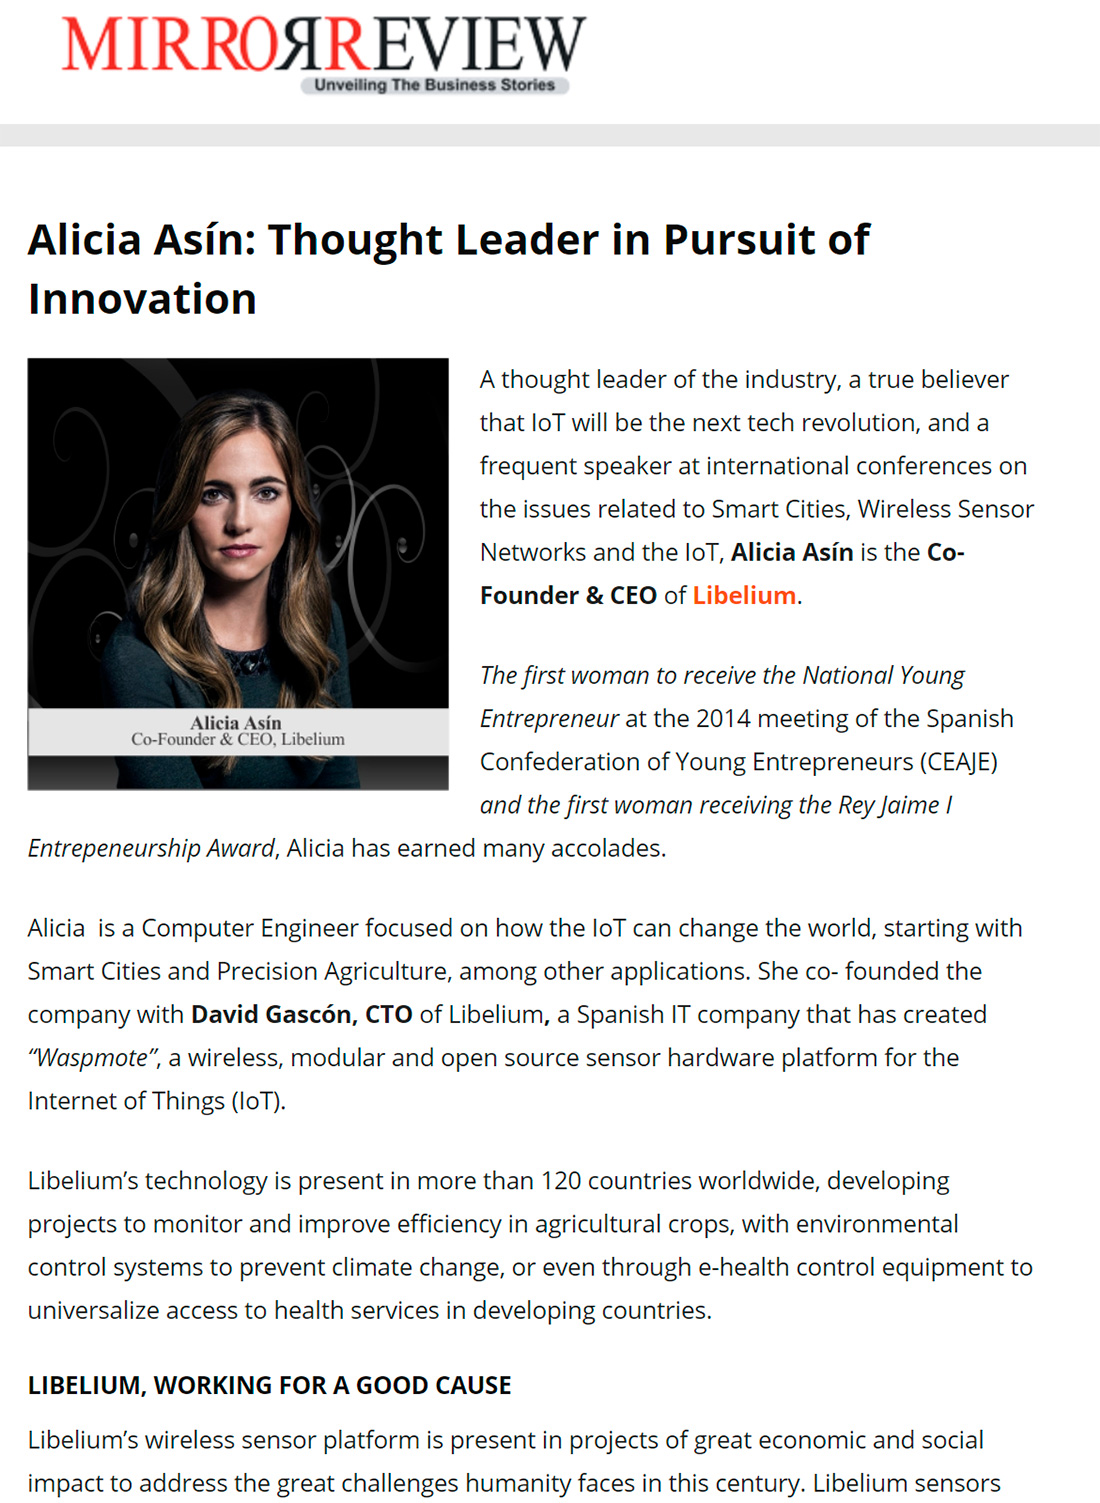 Alicia Asín: Thought Leader in Pursuit of Innovation